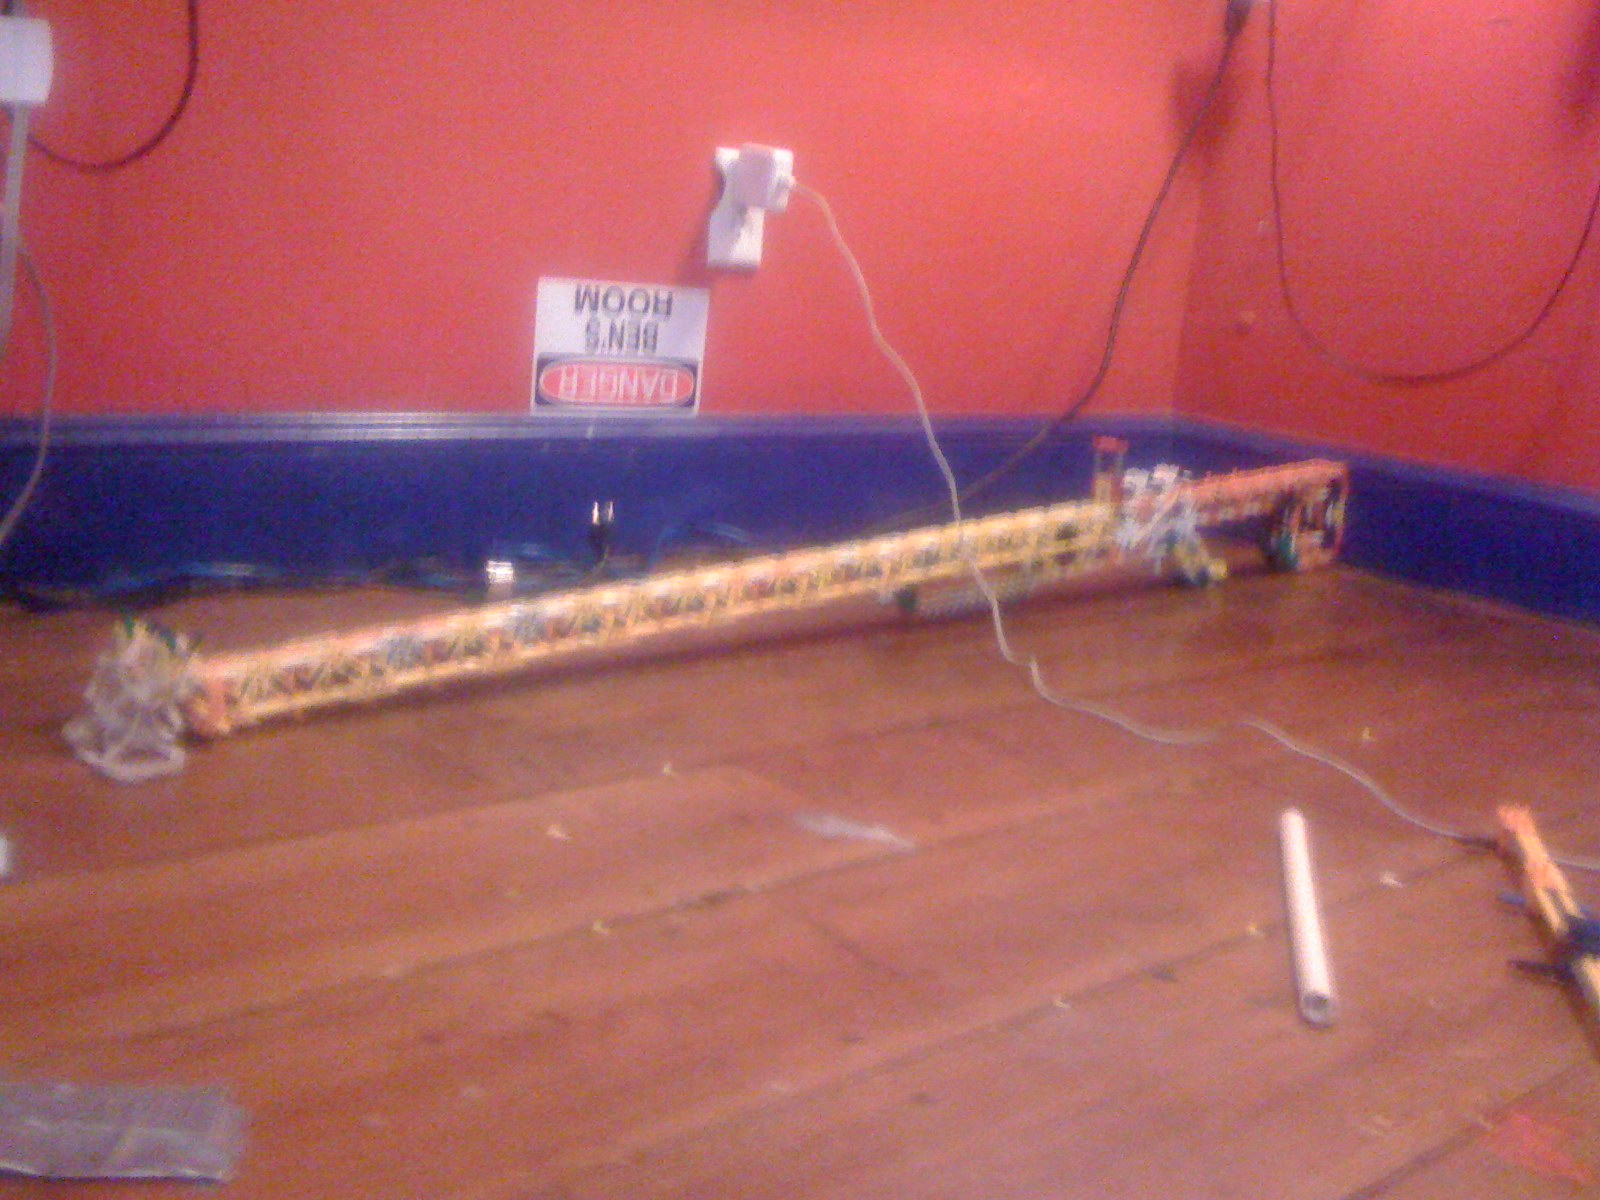 The B.s.r Raptor... the longest range Knex sniper rifle in history